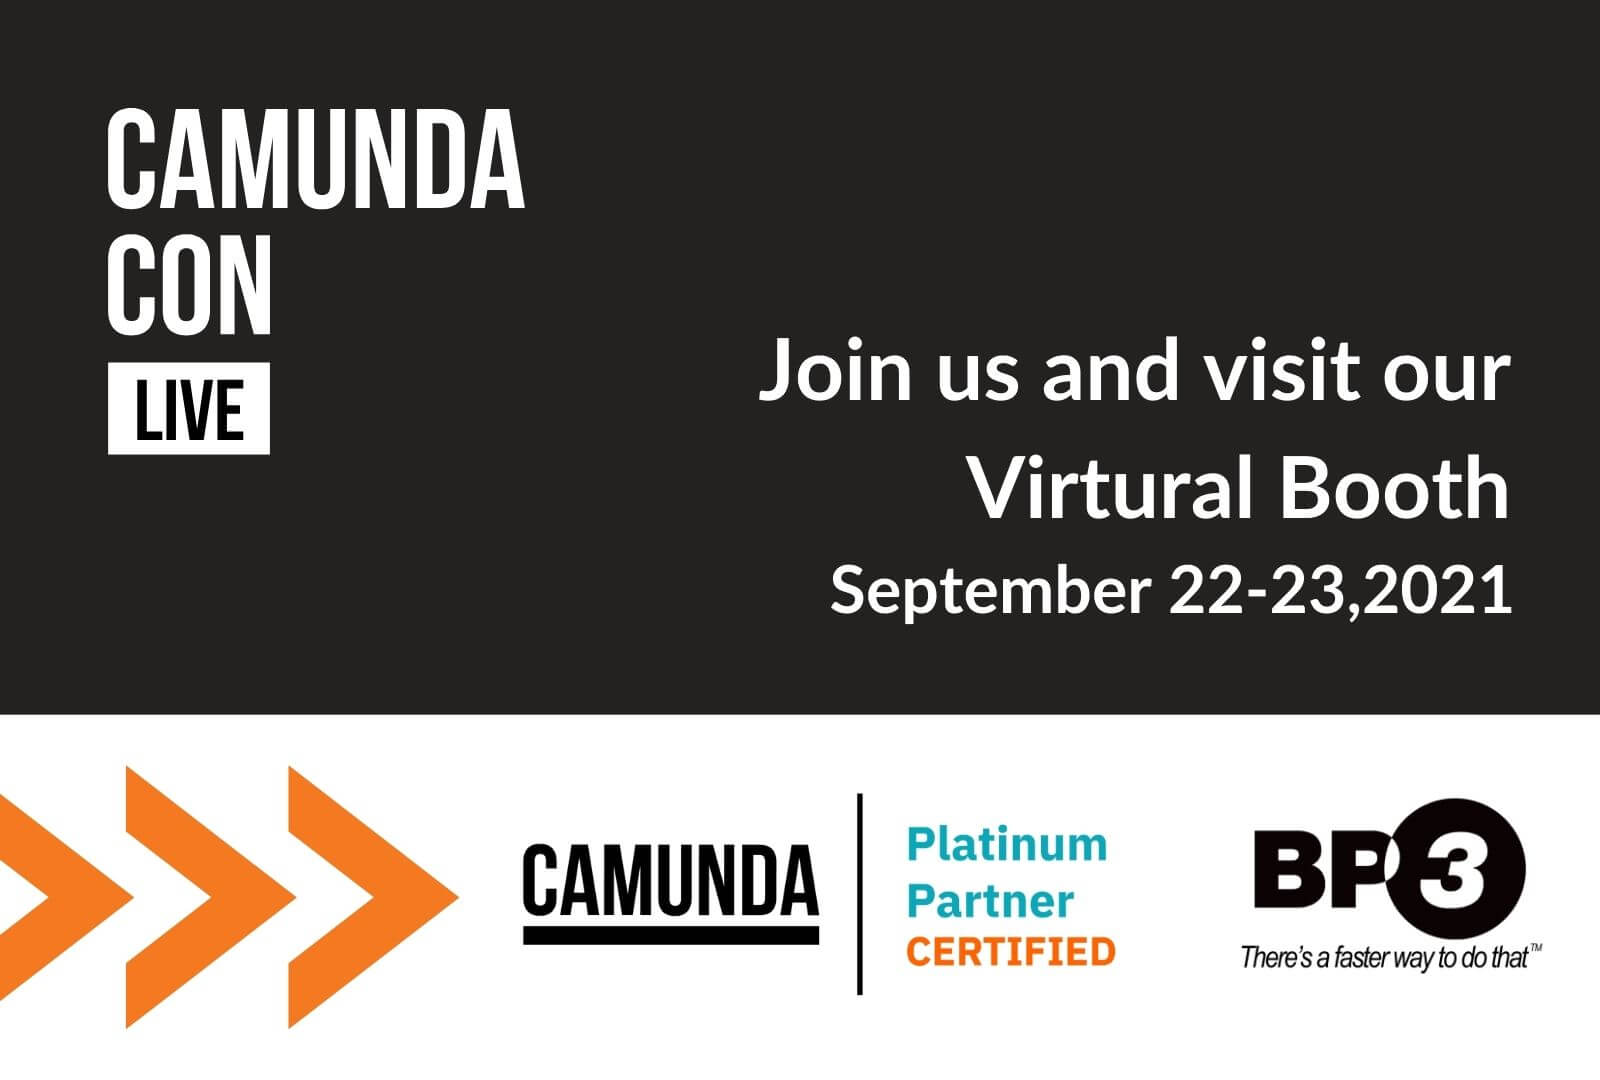 Register for our virtual booth at CamundaCon from September 22-23 and join an online global community experiencing a virtual conference dedicated to Process Automation. CamundaCon brings together thousands of software developers, architects, and IT executives to hear and share best practices and use cases. Get inspired by your peers and the latest product updates from the team behind Camunda.